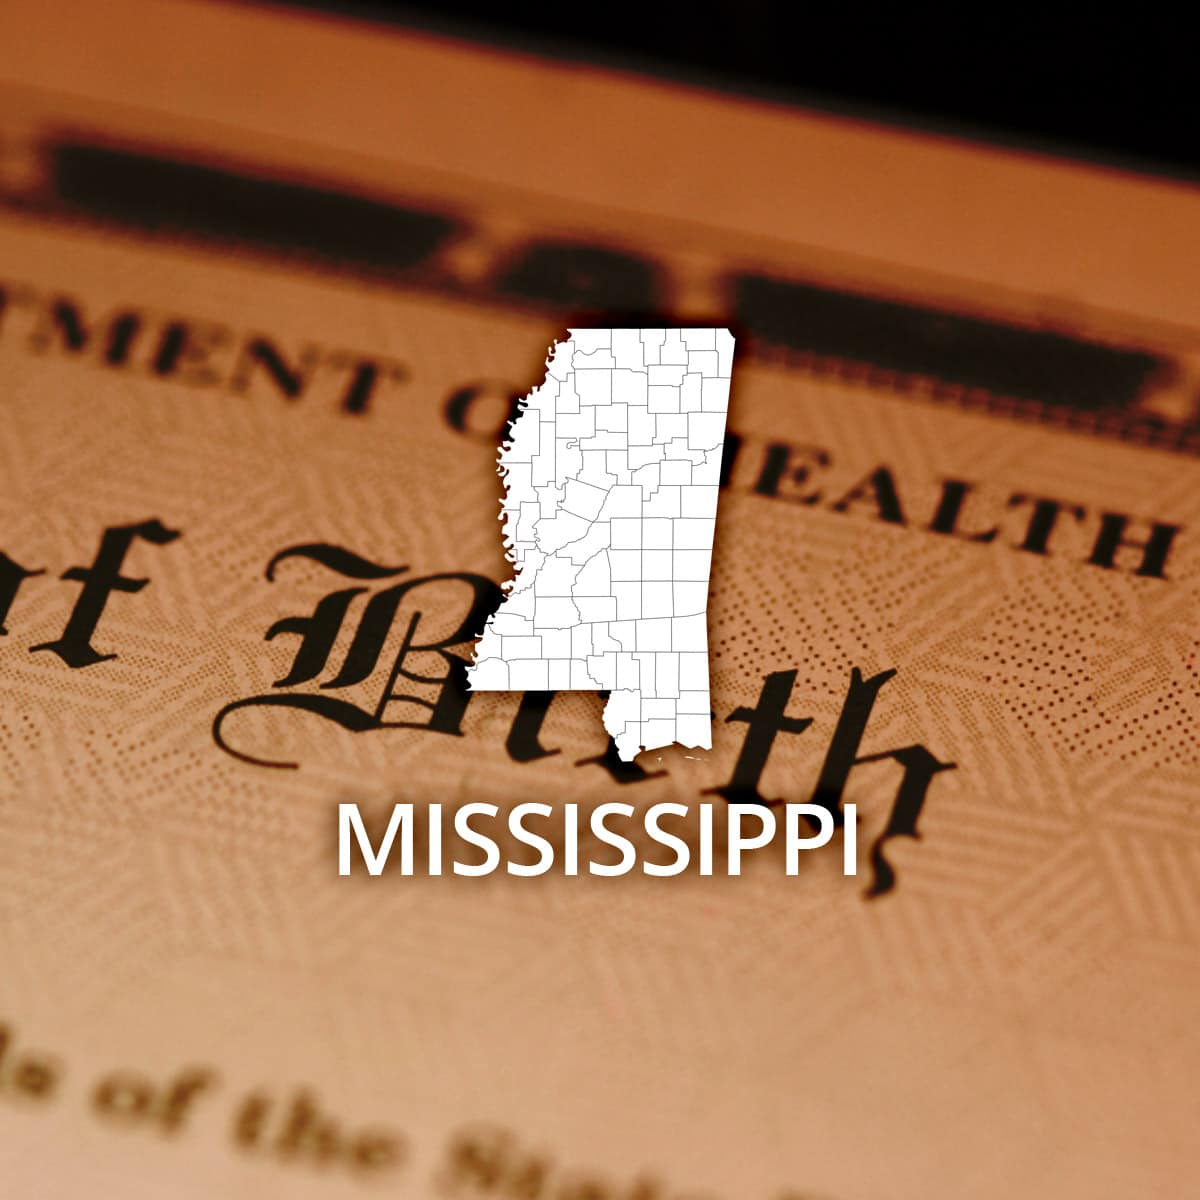 Where to Obtain a Mississippi Birth Certificate